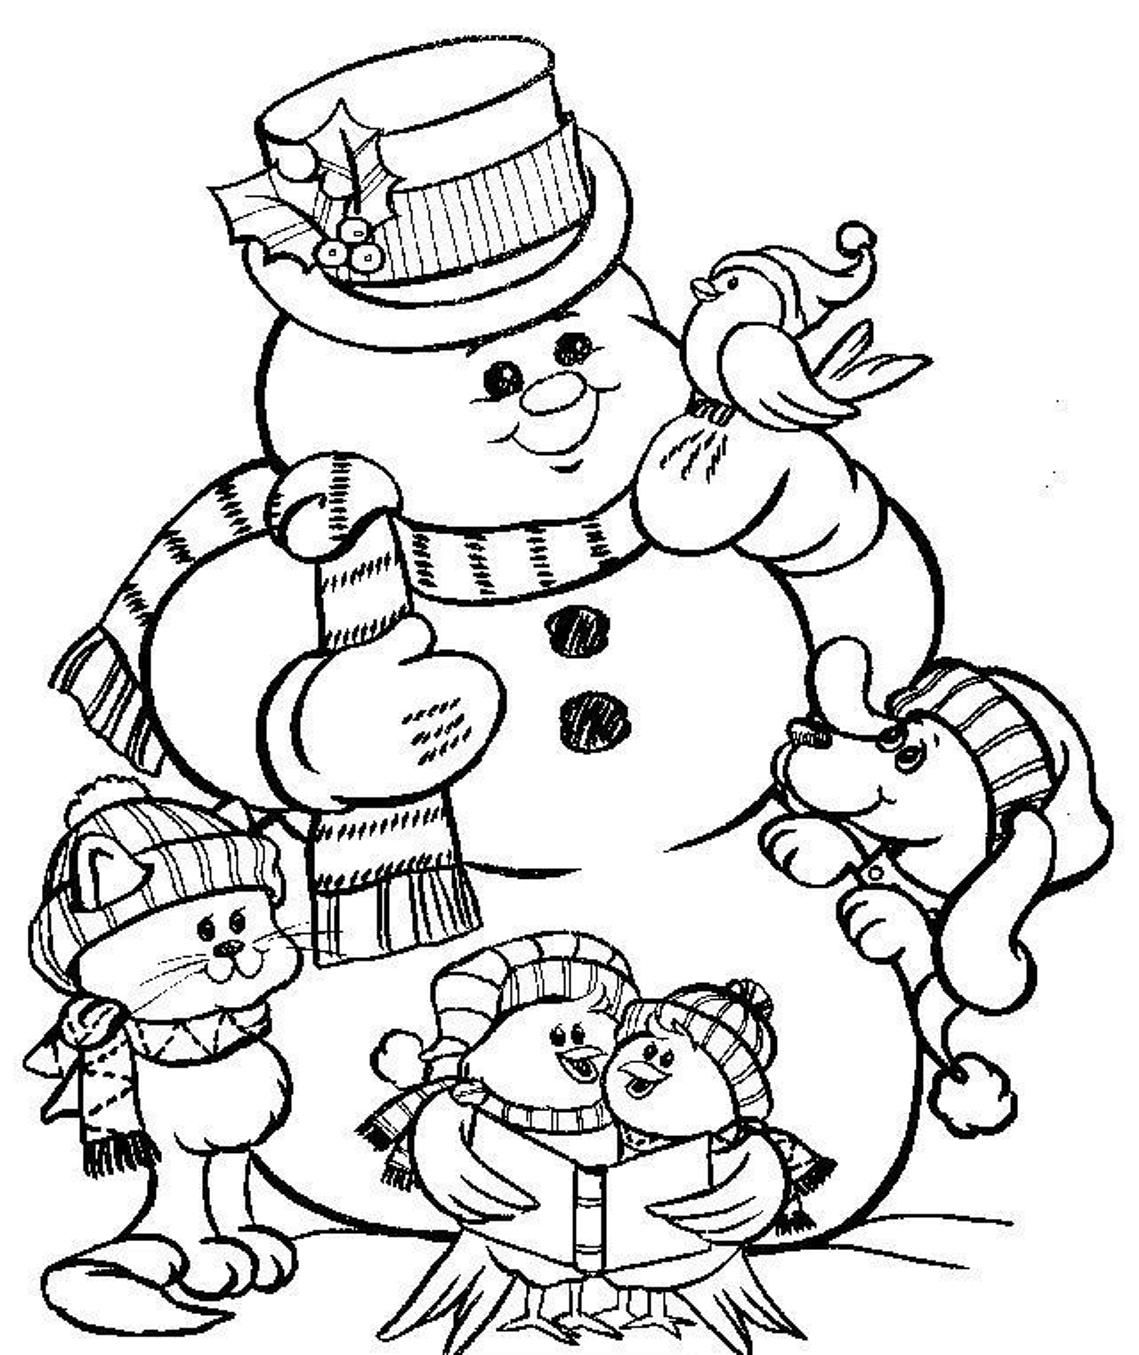 Christmas Snowman Coloring Pages To Print | Winter ...